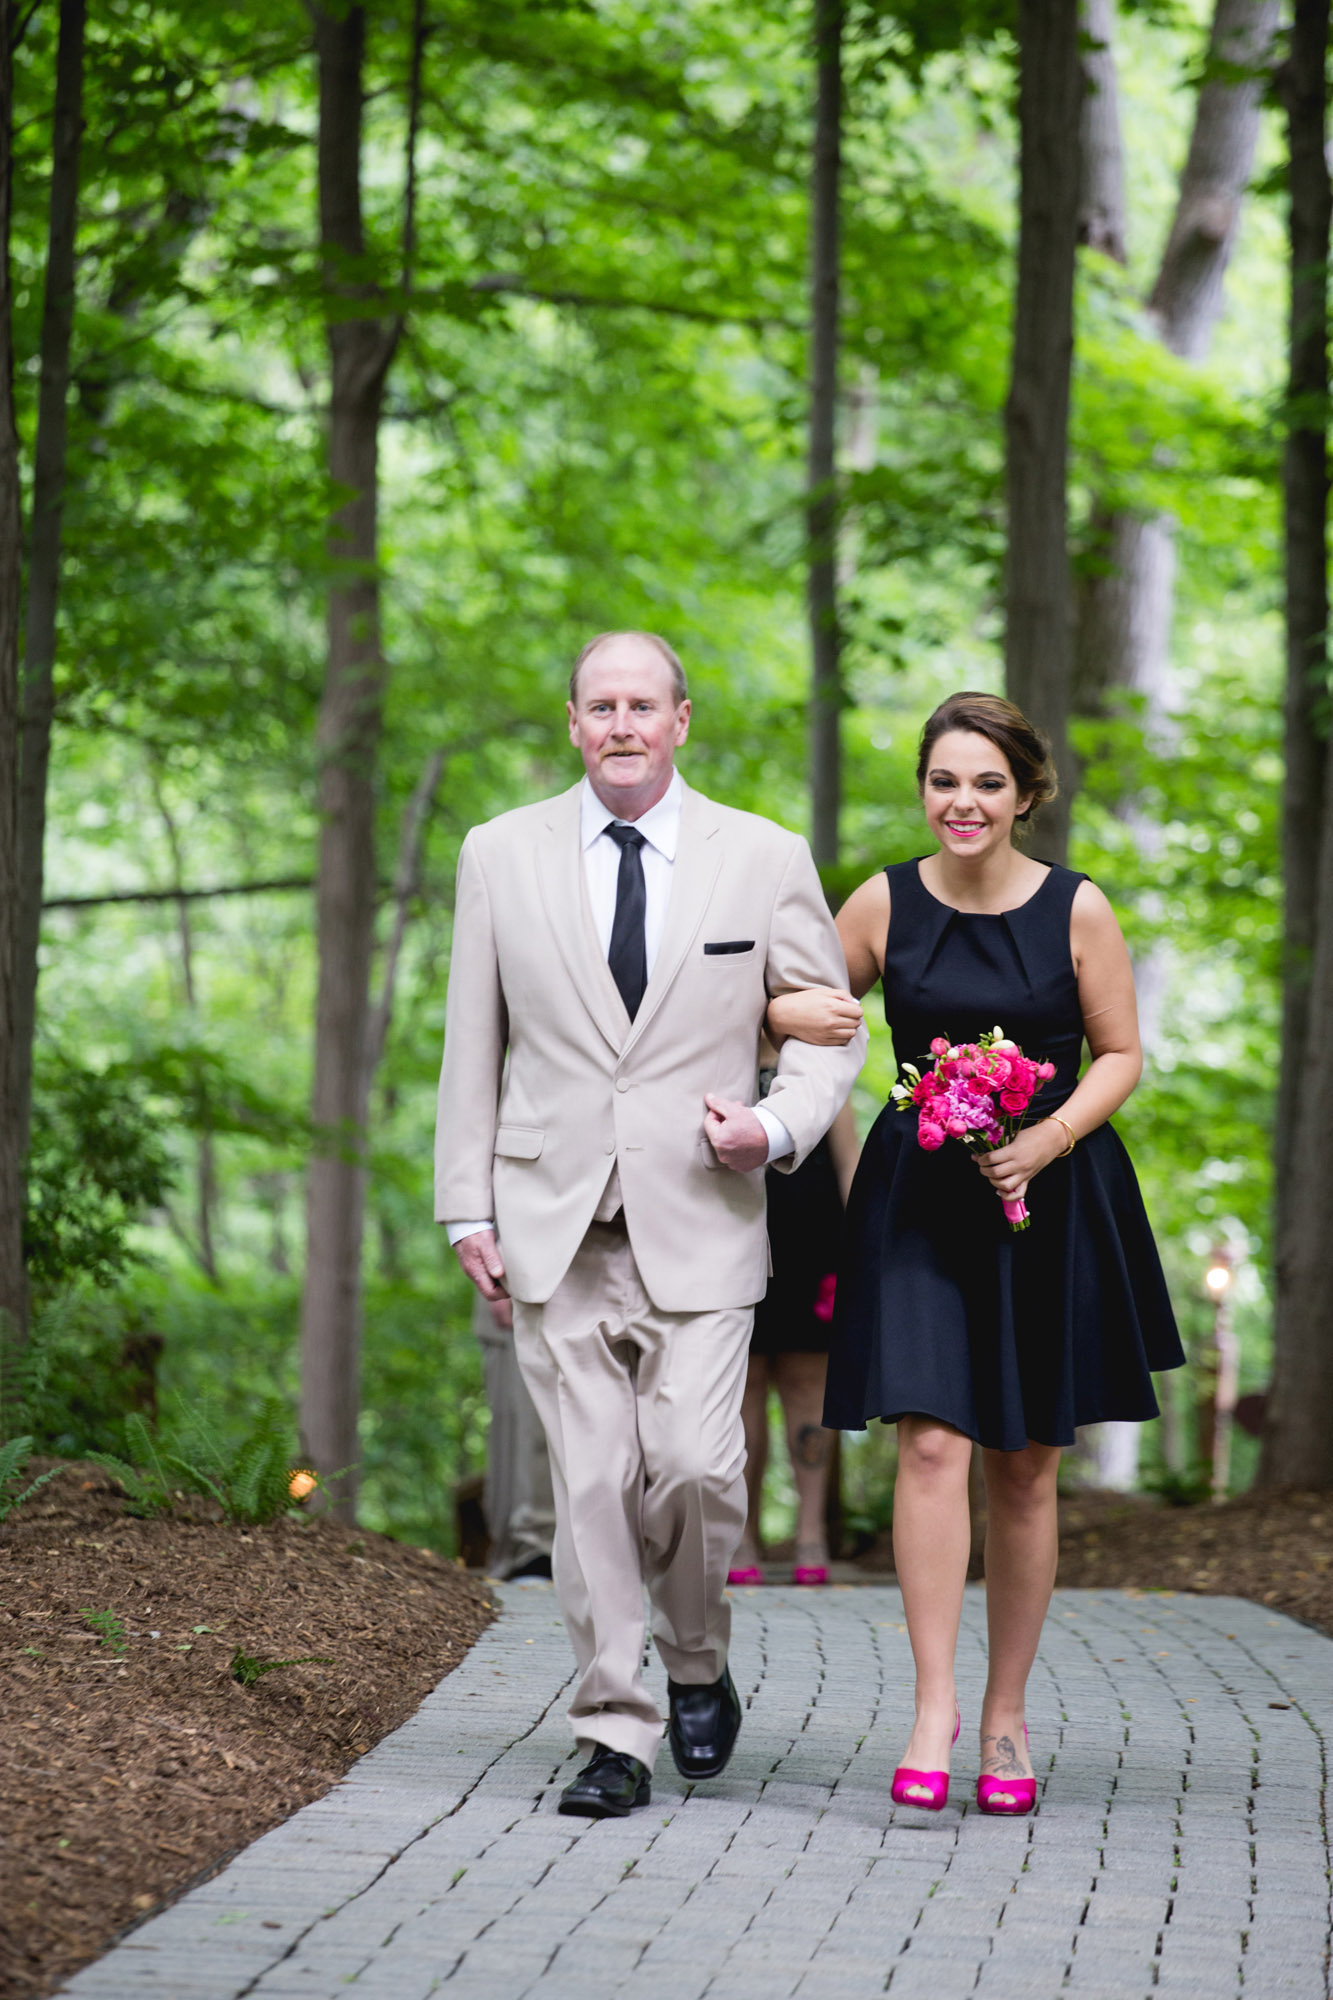 Caitlin & Joe's Stroudsmoor Woodsgate Wedding 36